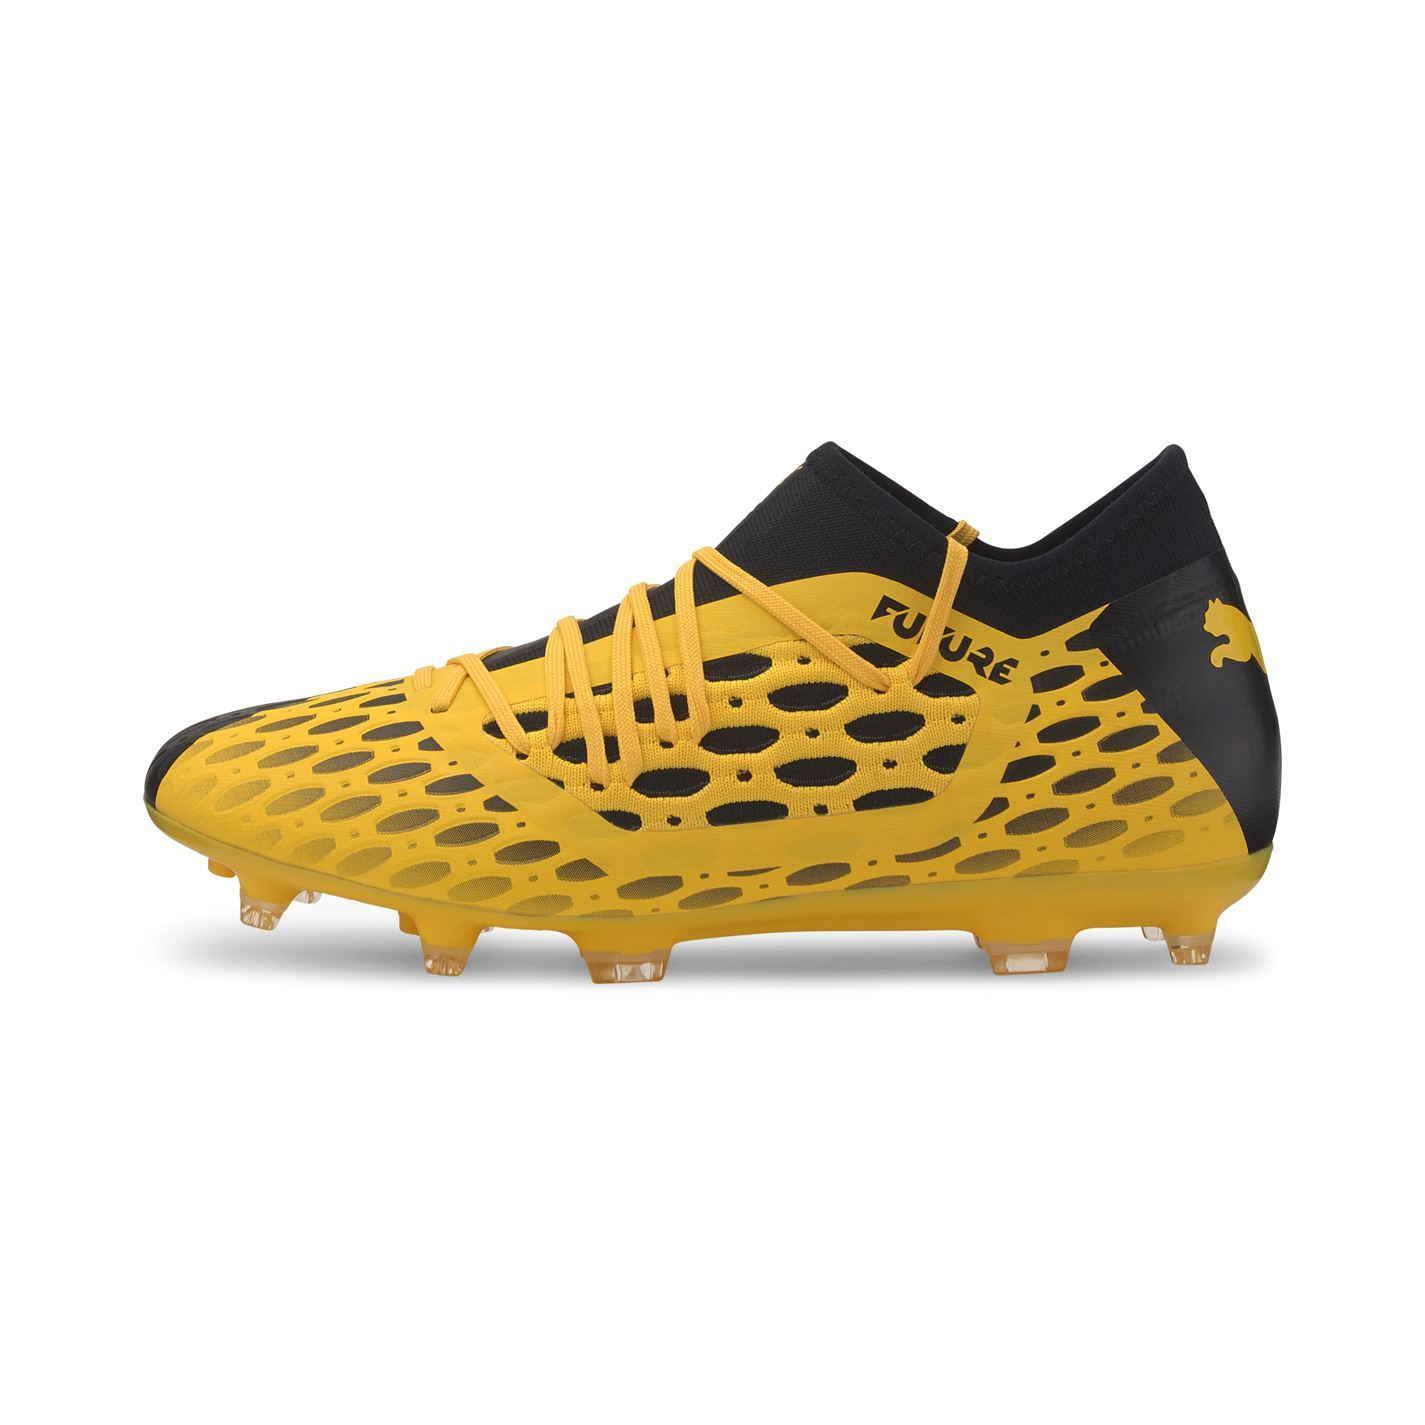 miniature 6 - Puma Future 5.3 Homme FG Firm Ground Chaussures De Football Chaussures de Foot Crampons Baskets